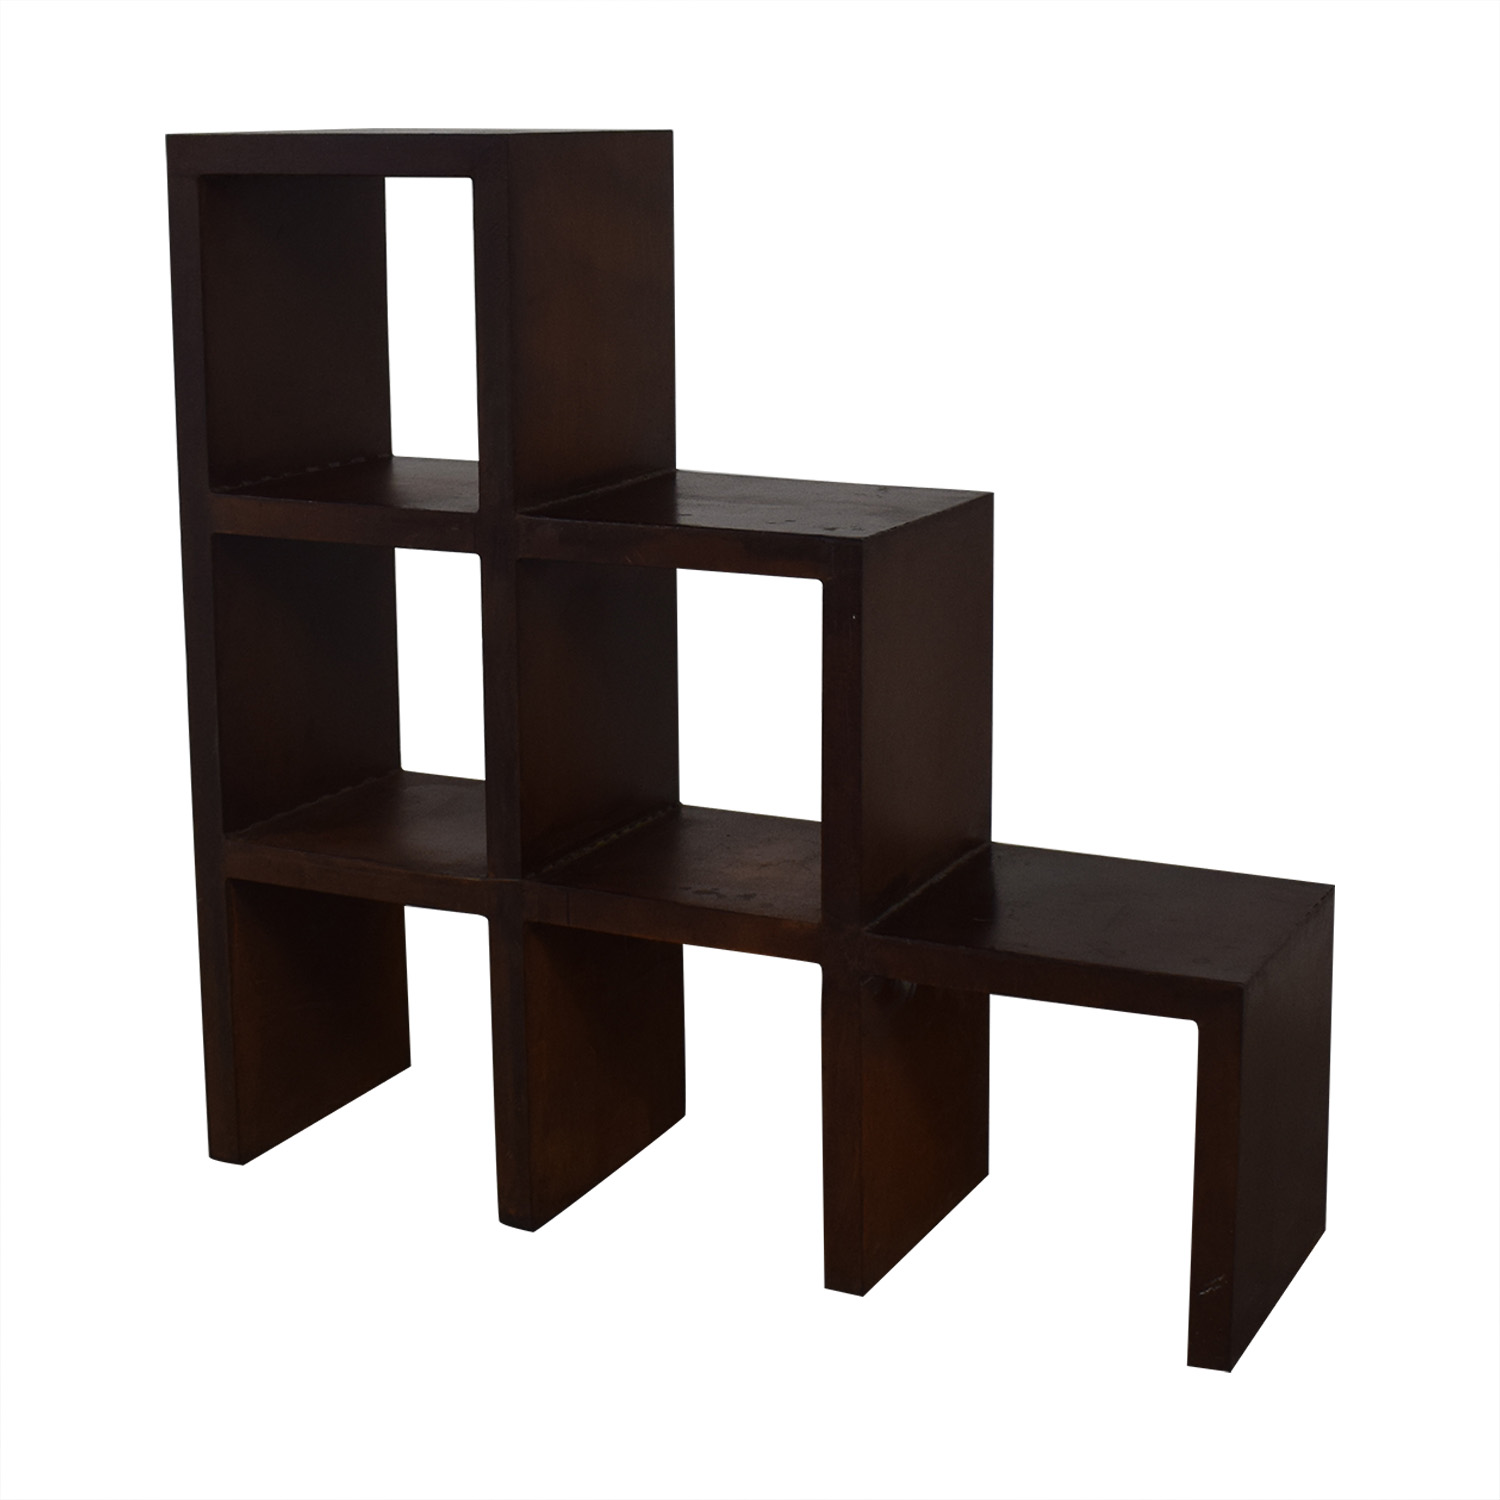 buy Artisan Metal Bookcase  Bookcases & Shelving